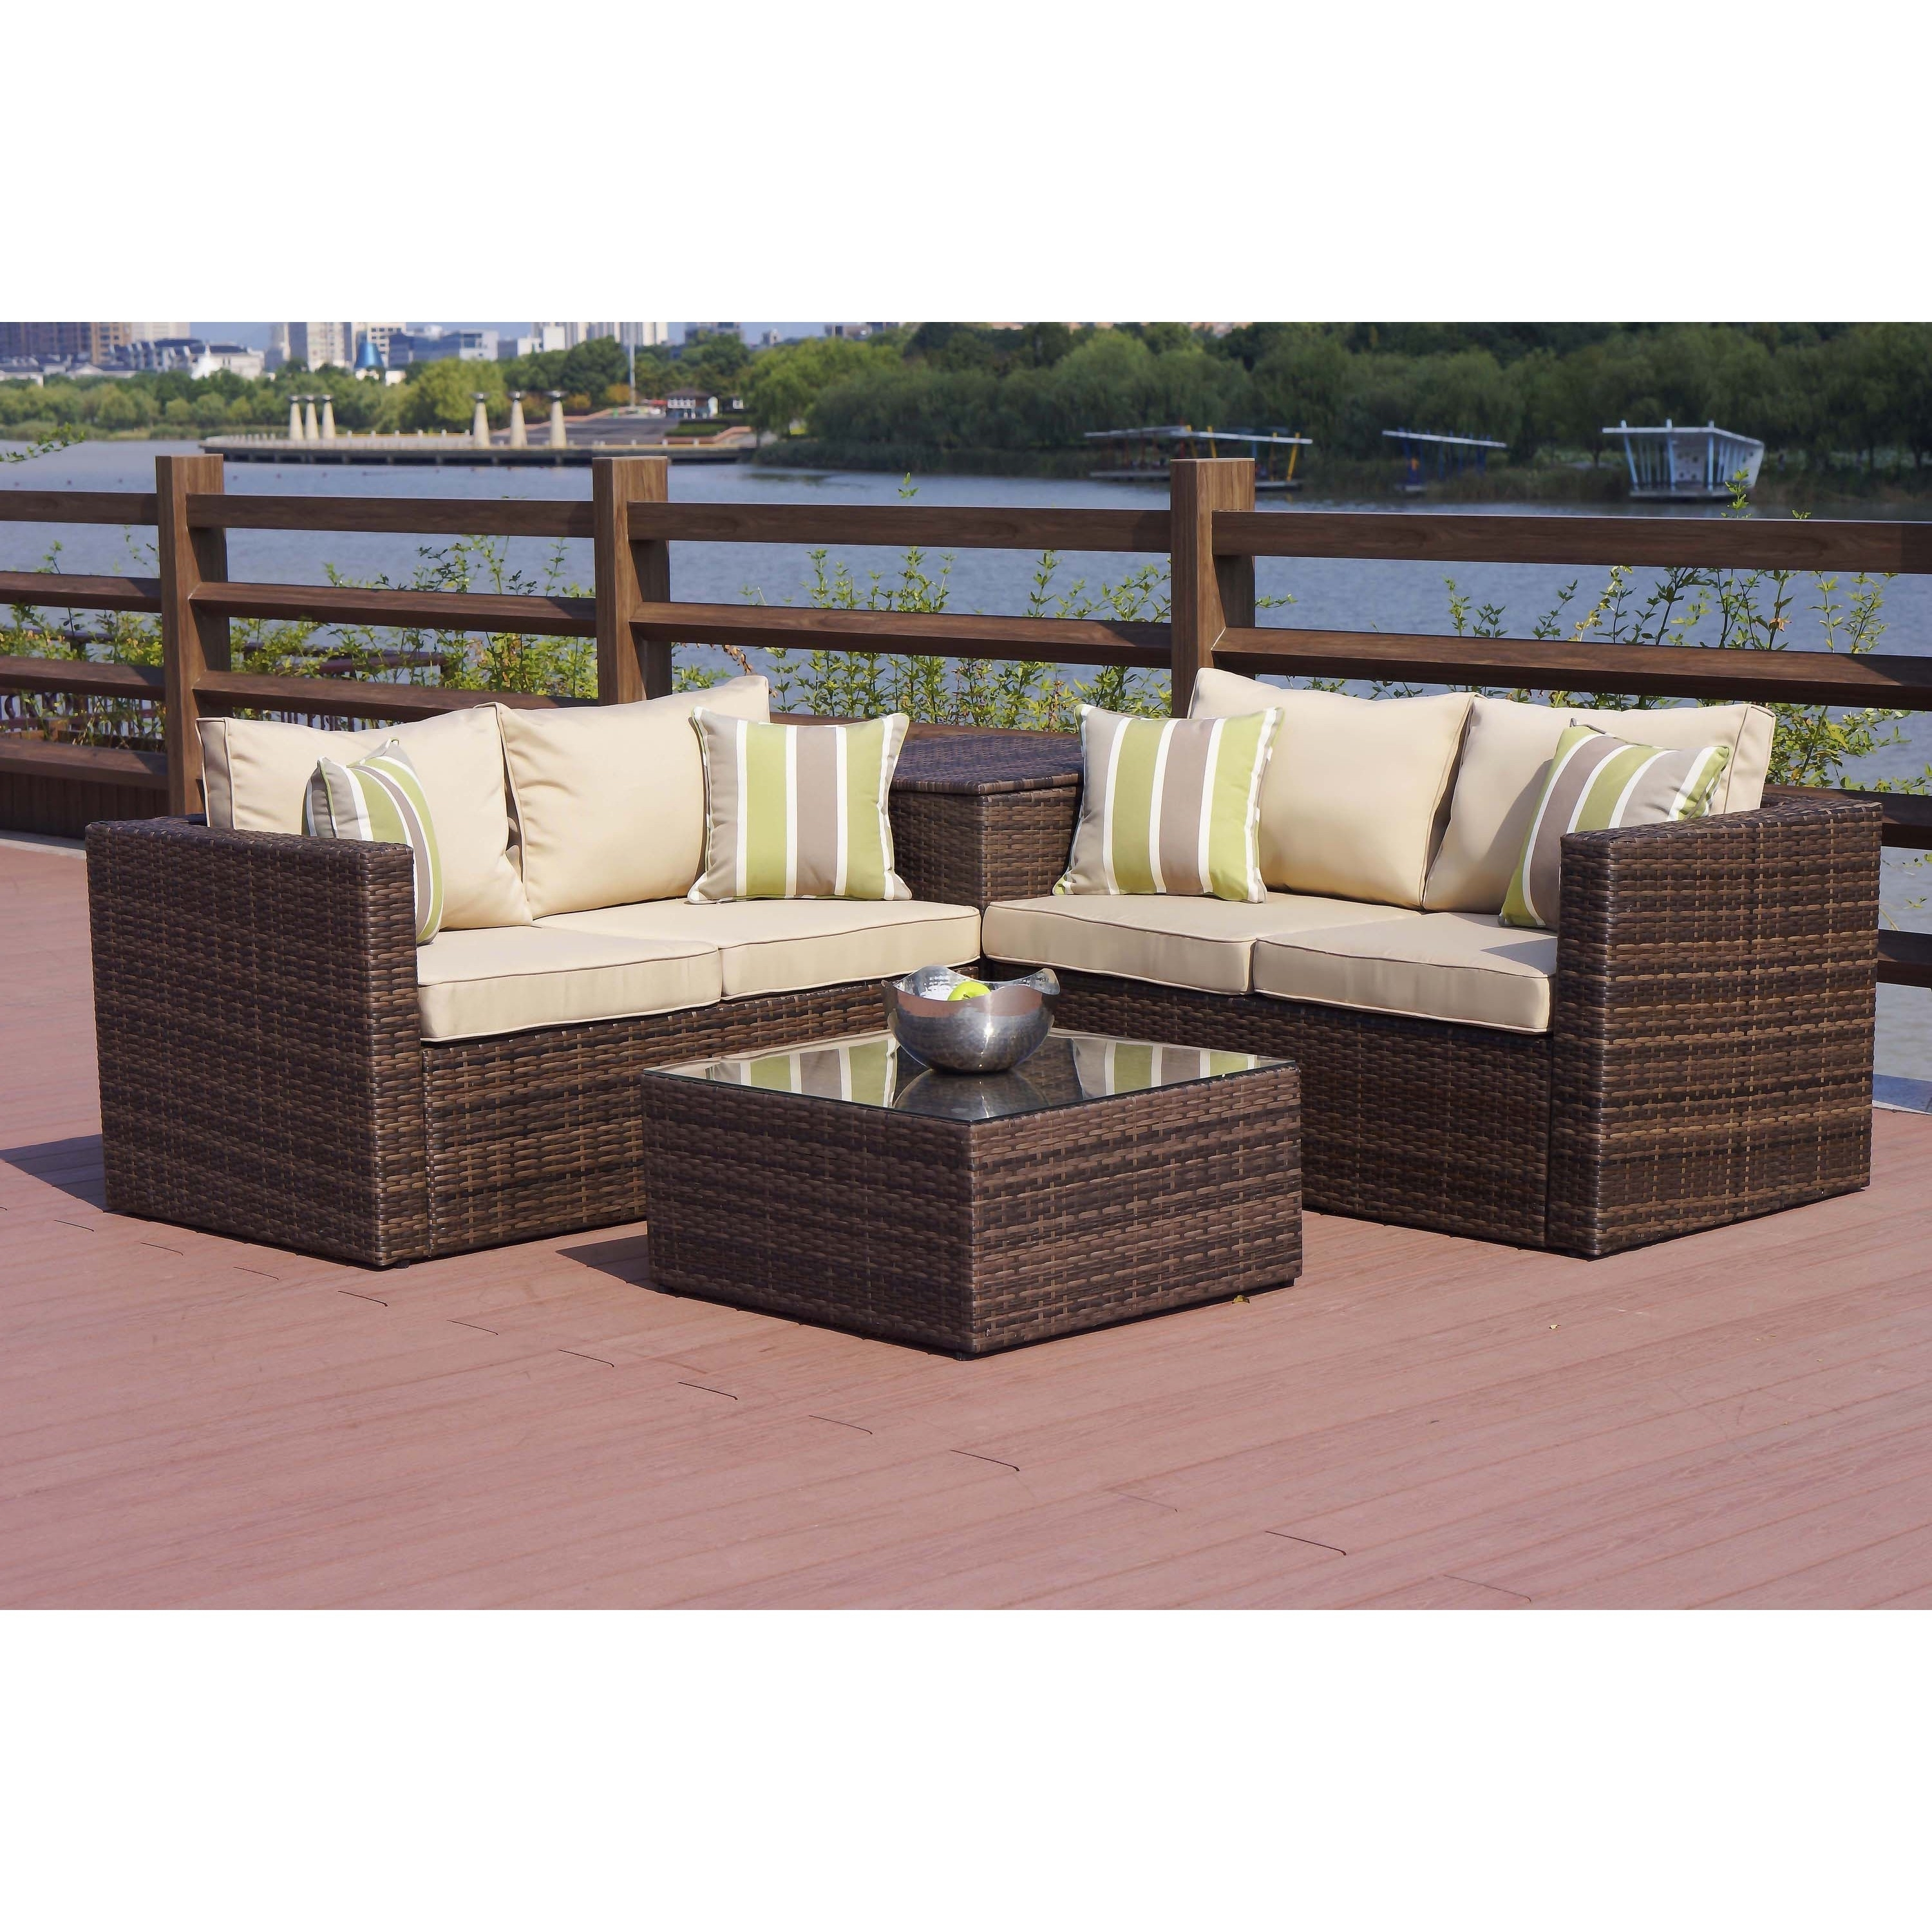 Patio Conversation Set With Storage Pertaining To Current Shop Zoe Outdoor 4 Piece Conversation Set With Storage Box – On Sale (View 12 of 15)